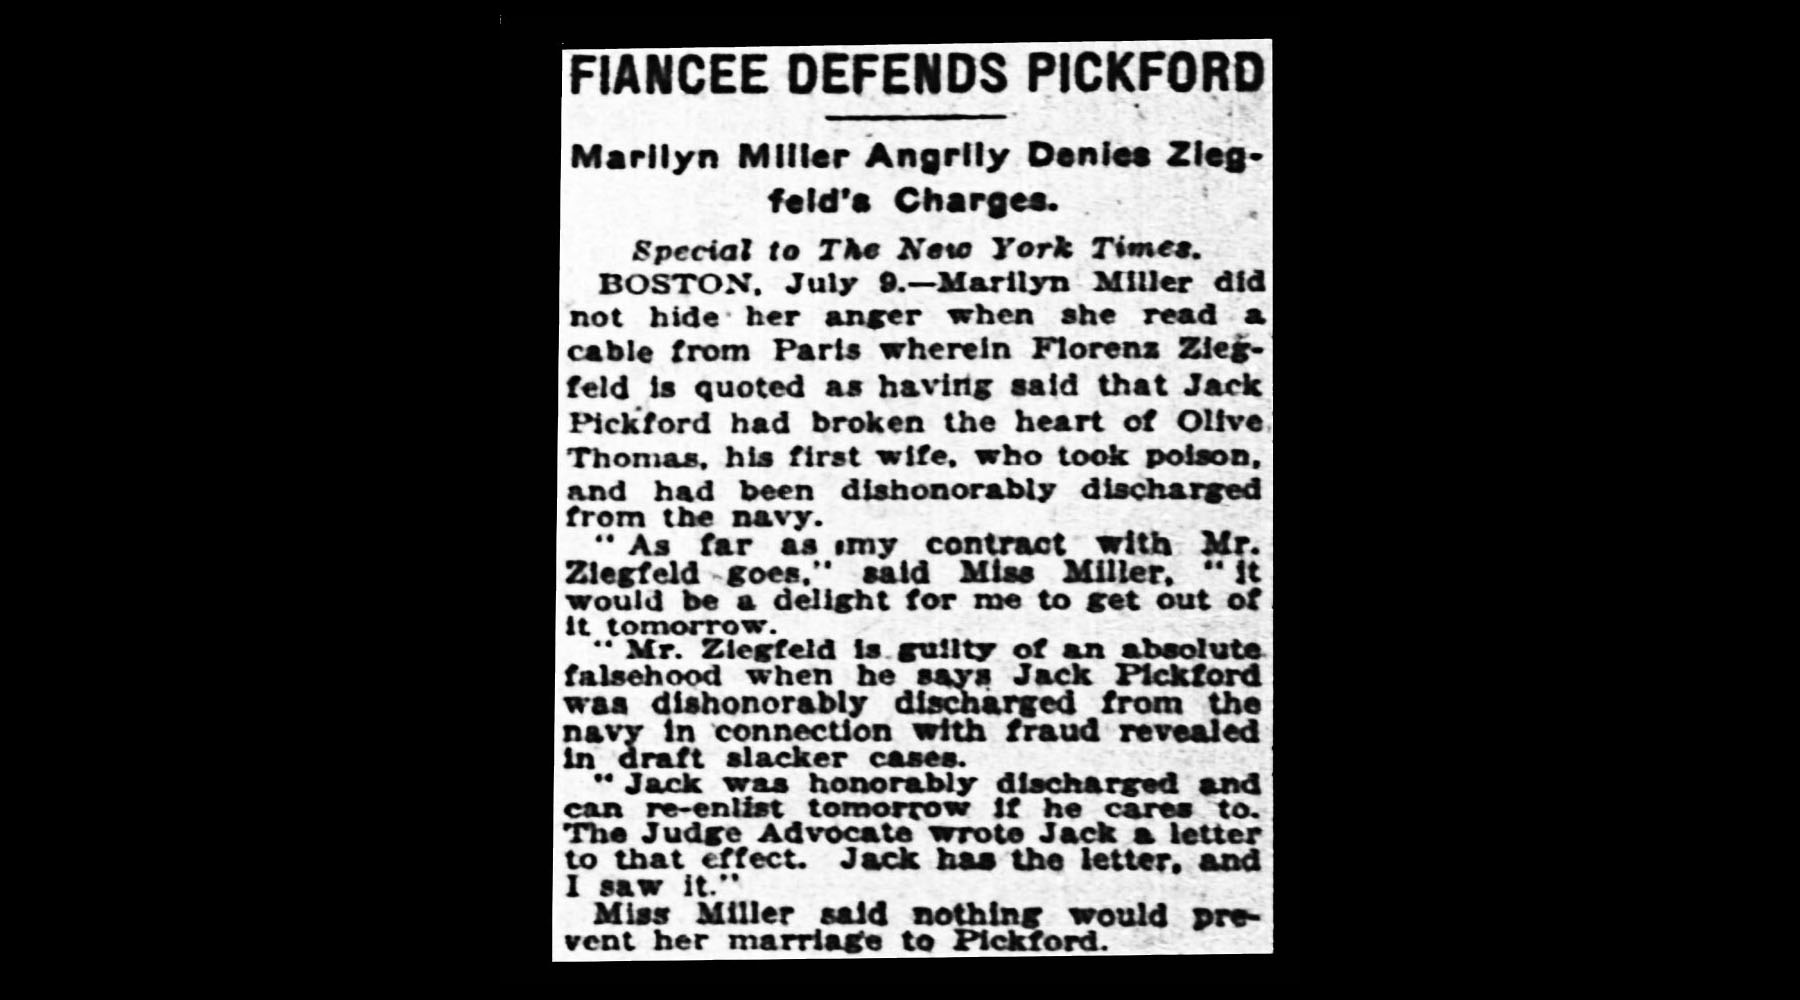 Marilyn publicly denies Florenz's claims about Jack and wants out of her contract with him. The marriage only lasts five years.